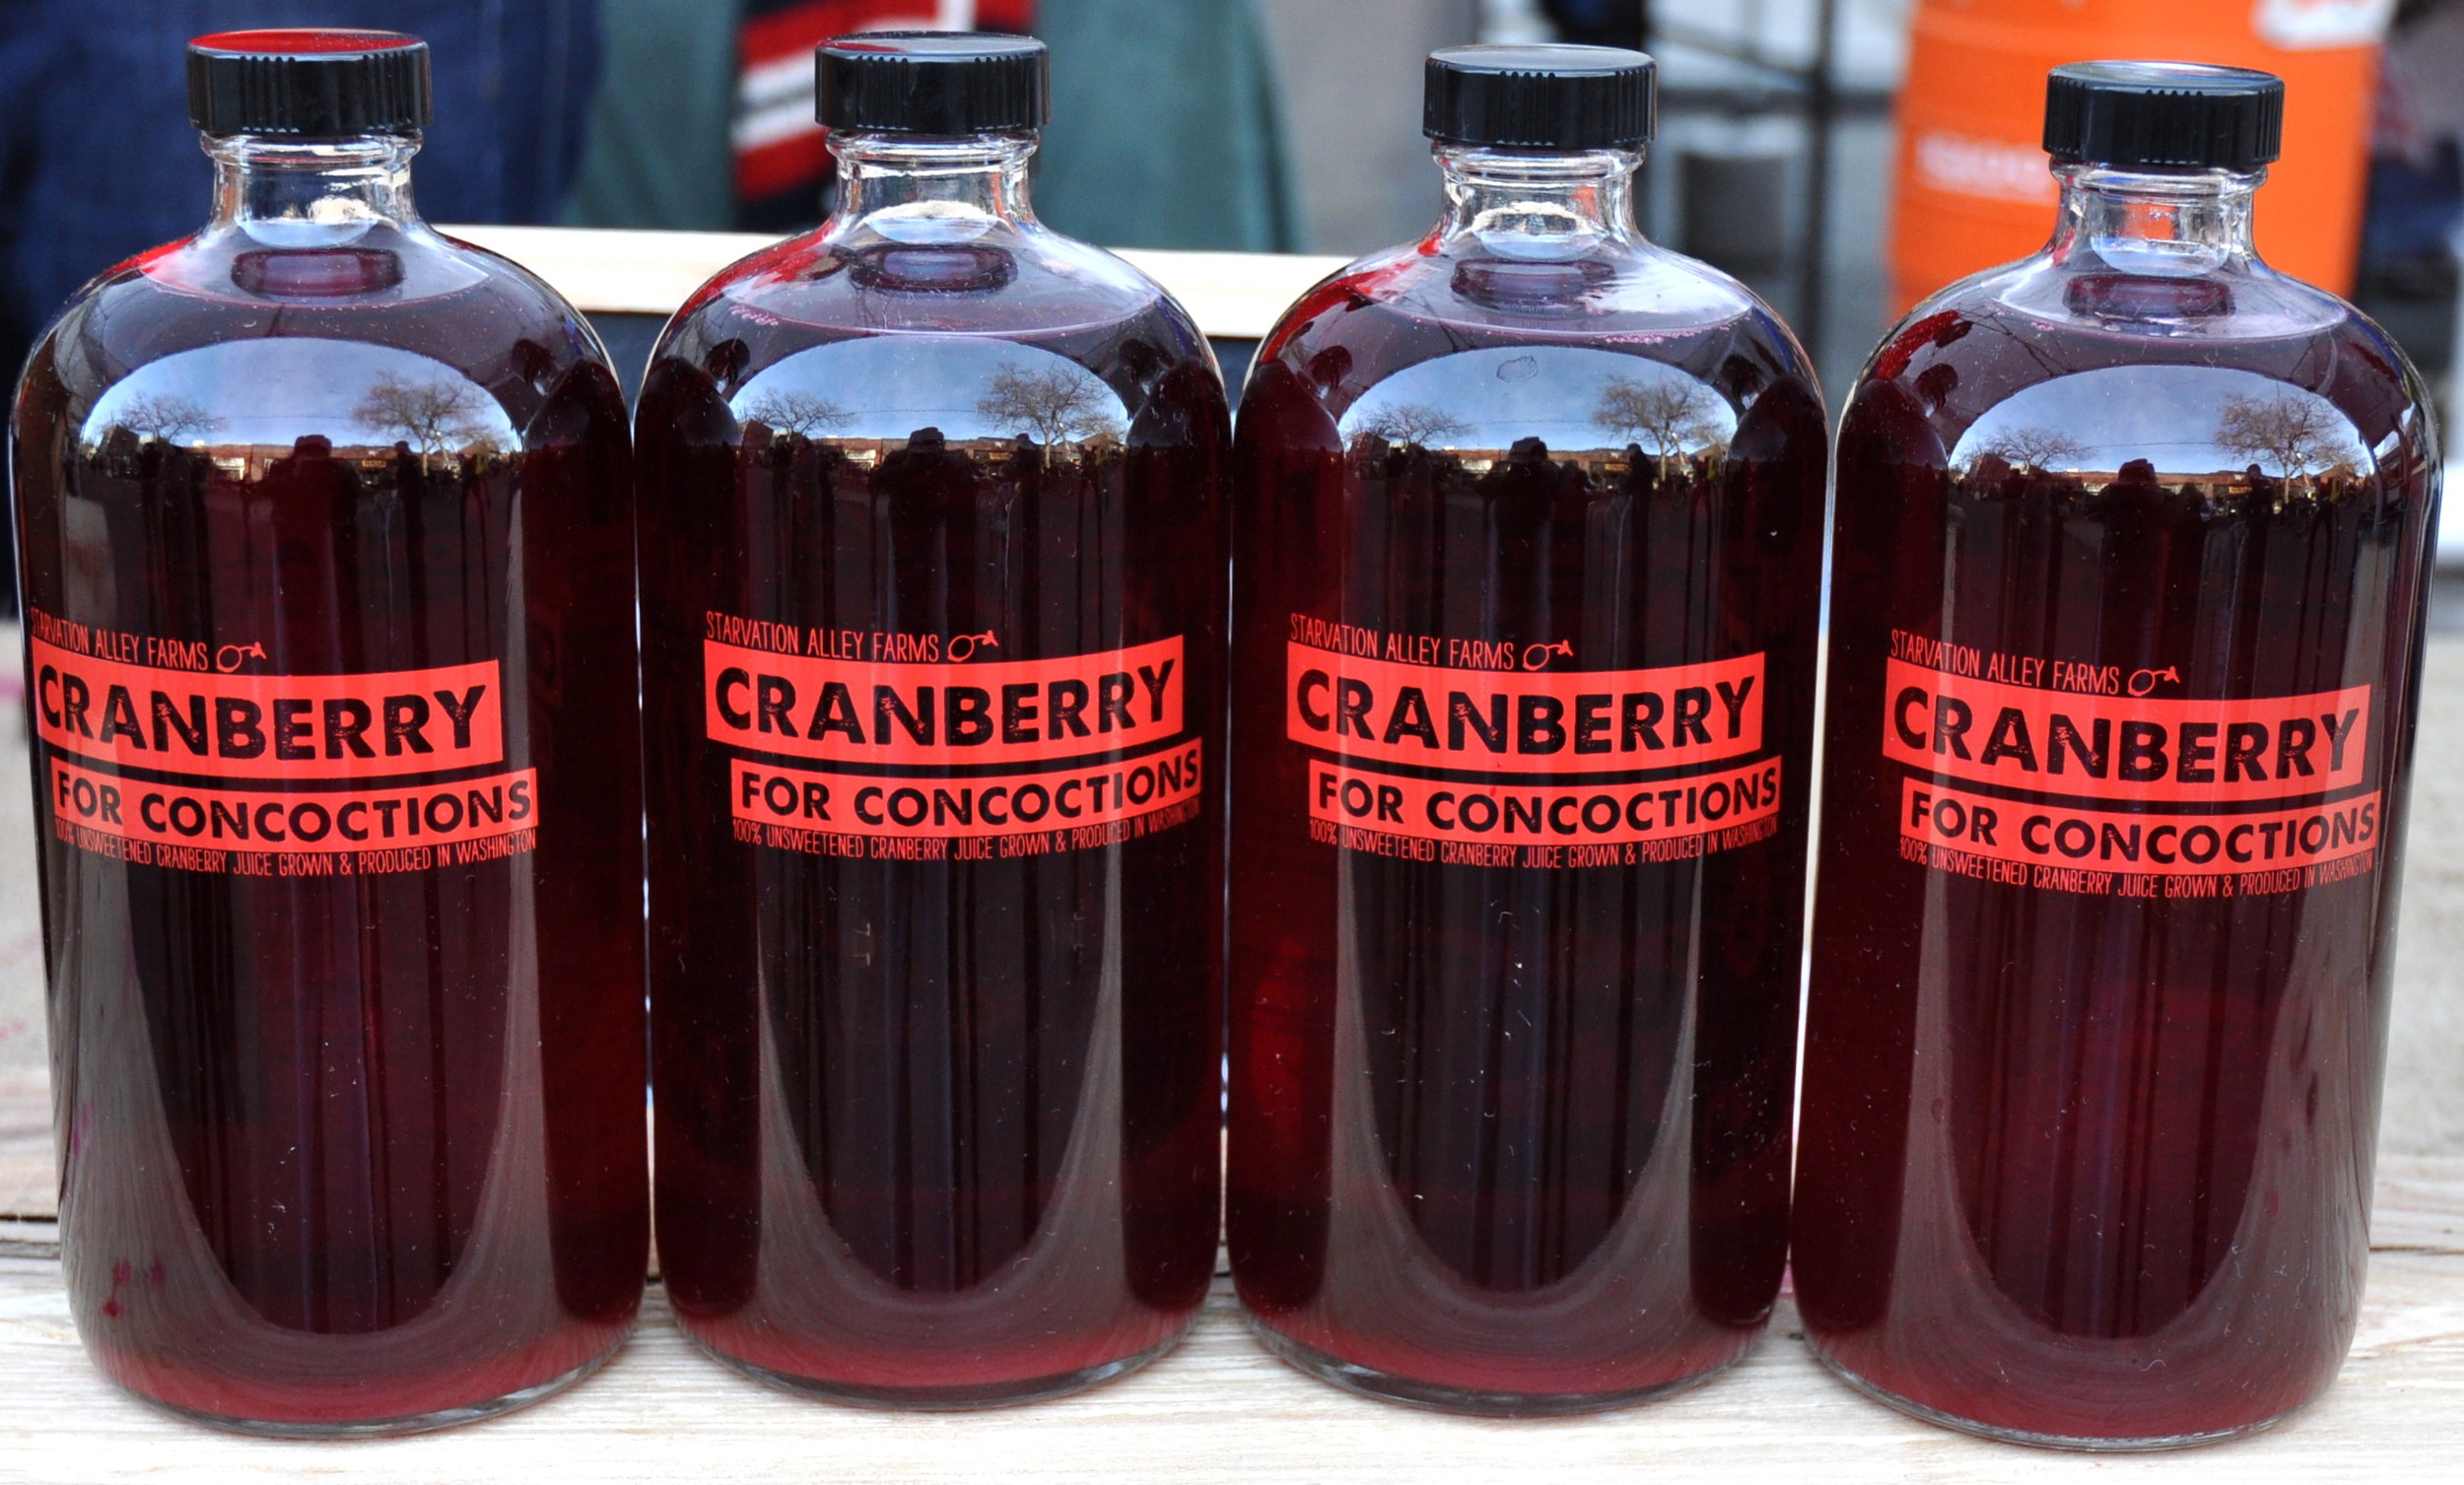 Organic cranberry juice from Starvation Alley Farms. Photo copyright 2014 by Zachary D. Lyons.